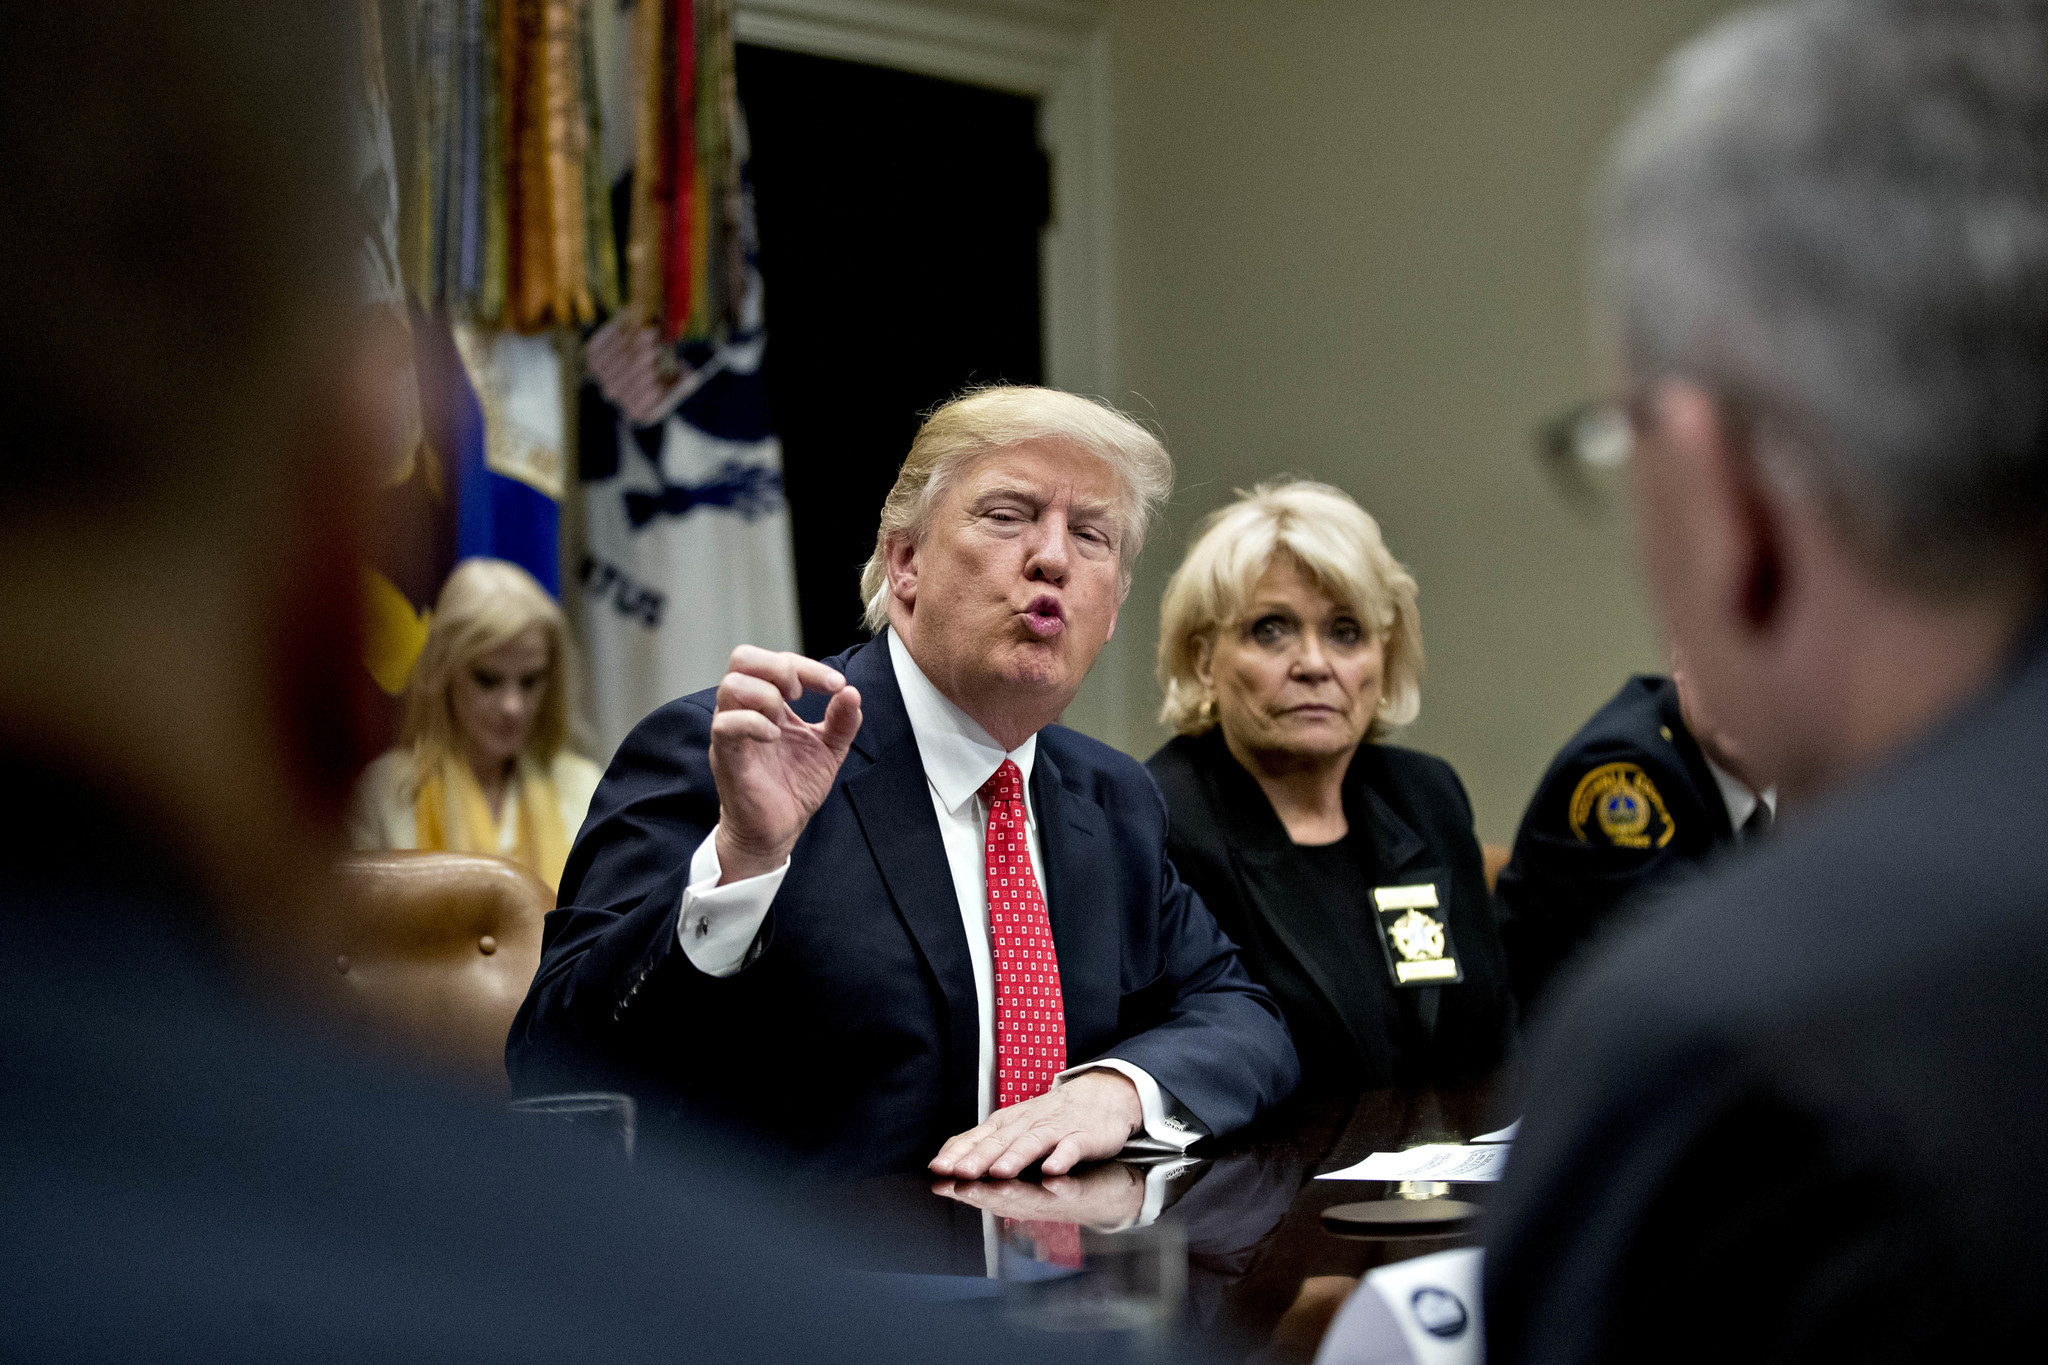 Fact check: Trump overstates national murder rate